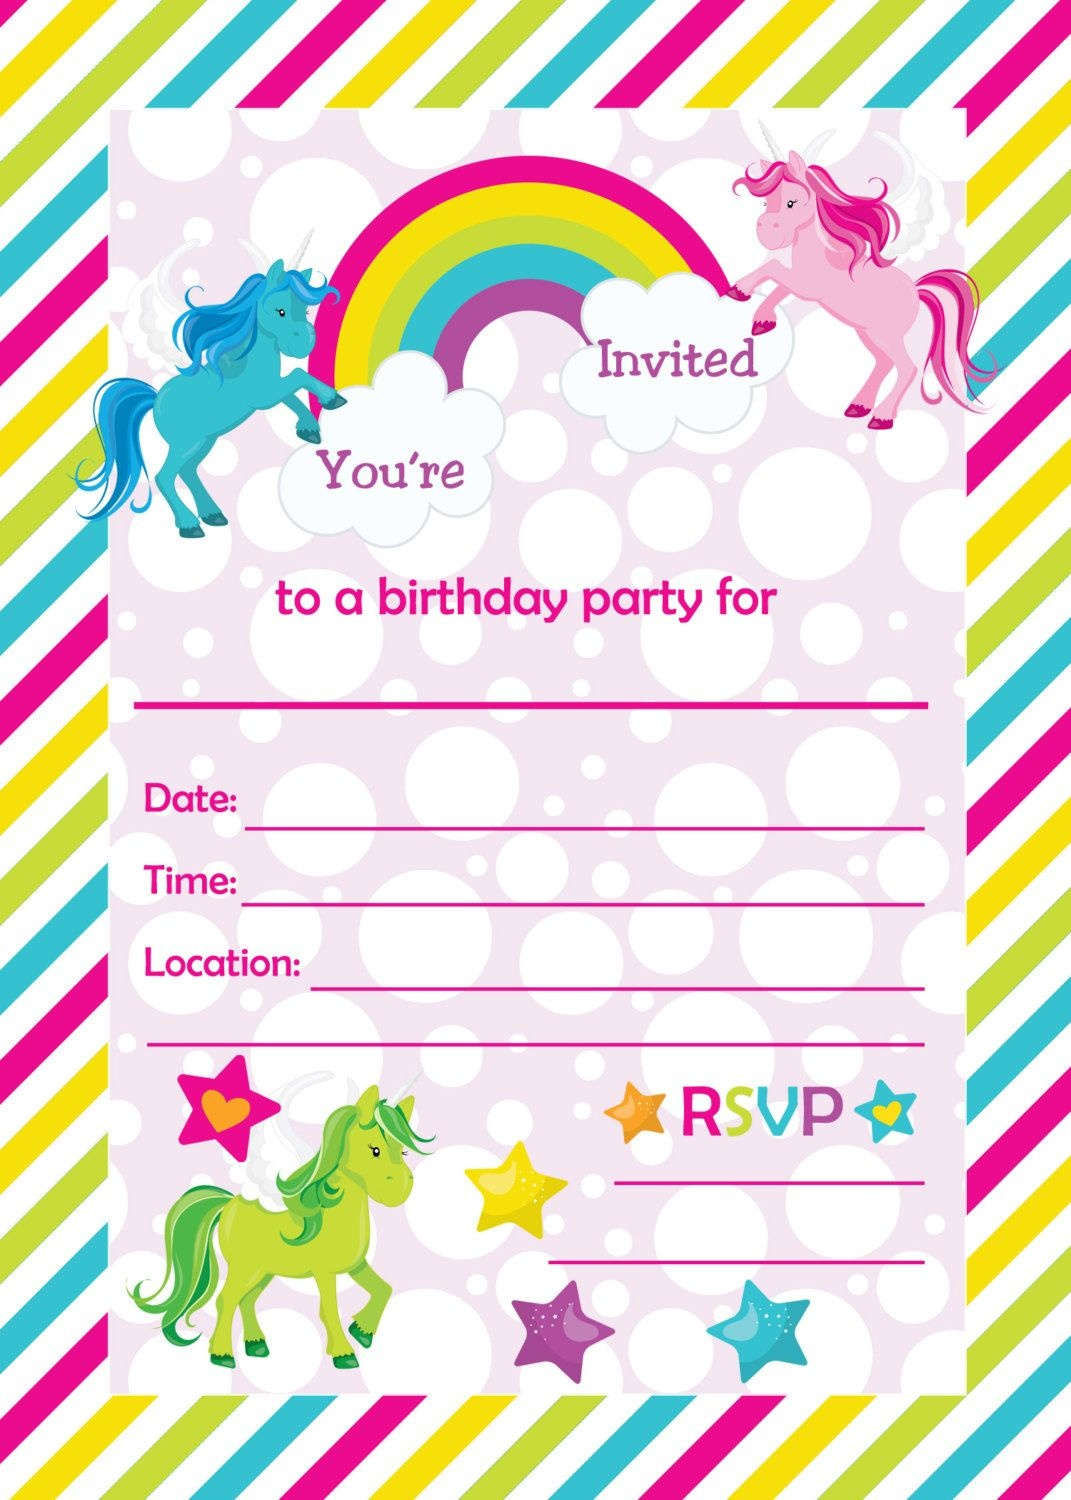 Free Printable Golden Unicorn Birthday Invitation Template - Free Printable Party Invitations